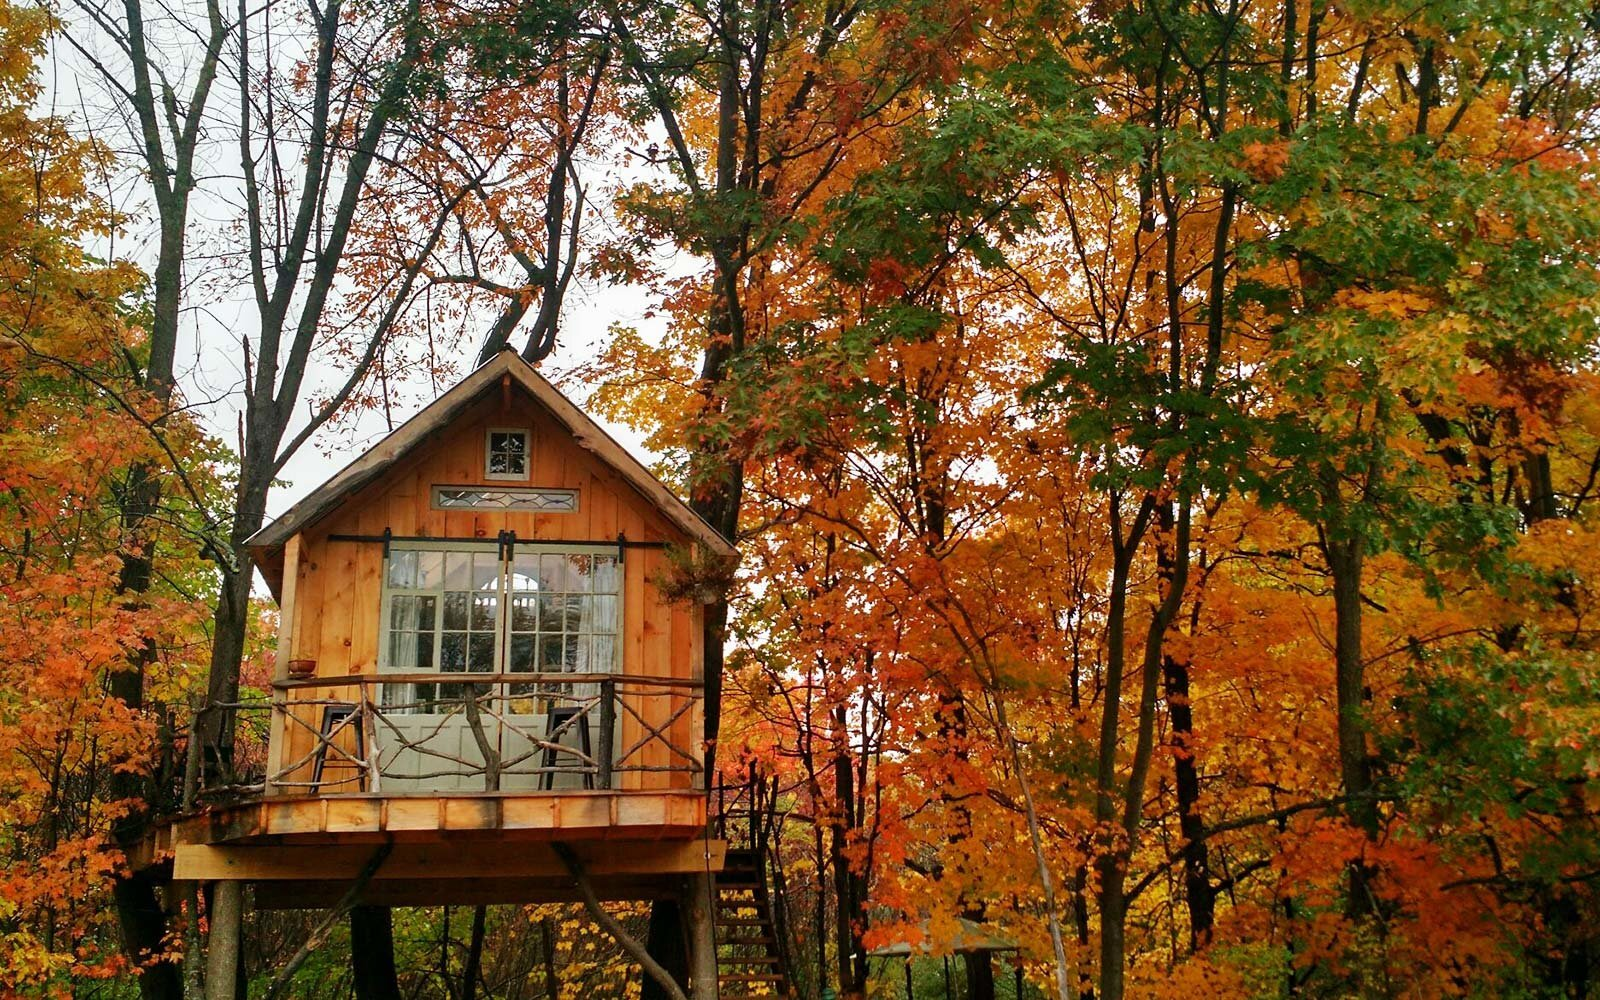 The Best Airbnbs to Rent for Fall Foliage Views | Travel + Leisure